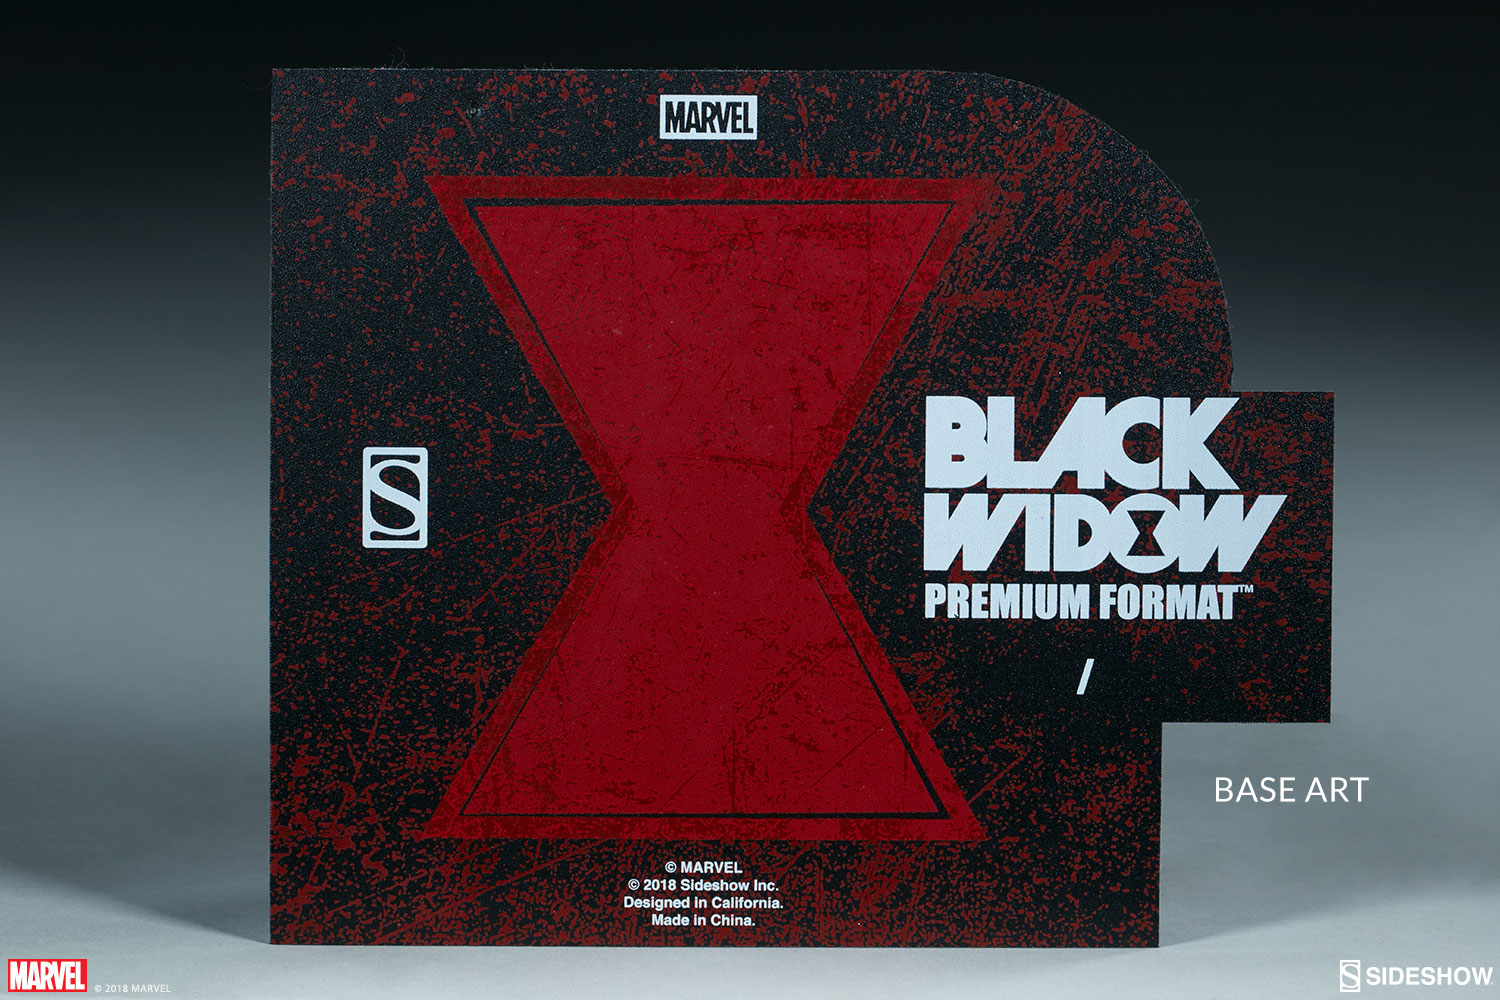 Marvel Black Widow Premium Format Tm Figure By Sideshow Col Sideshow Collectibles